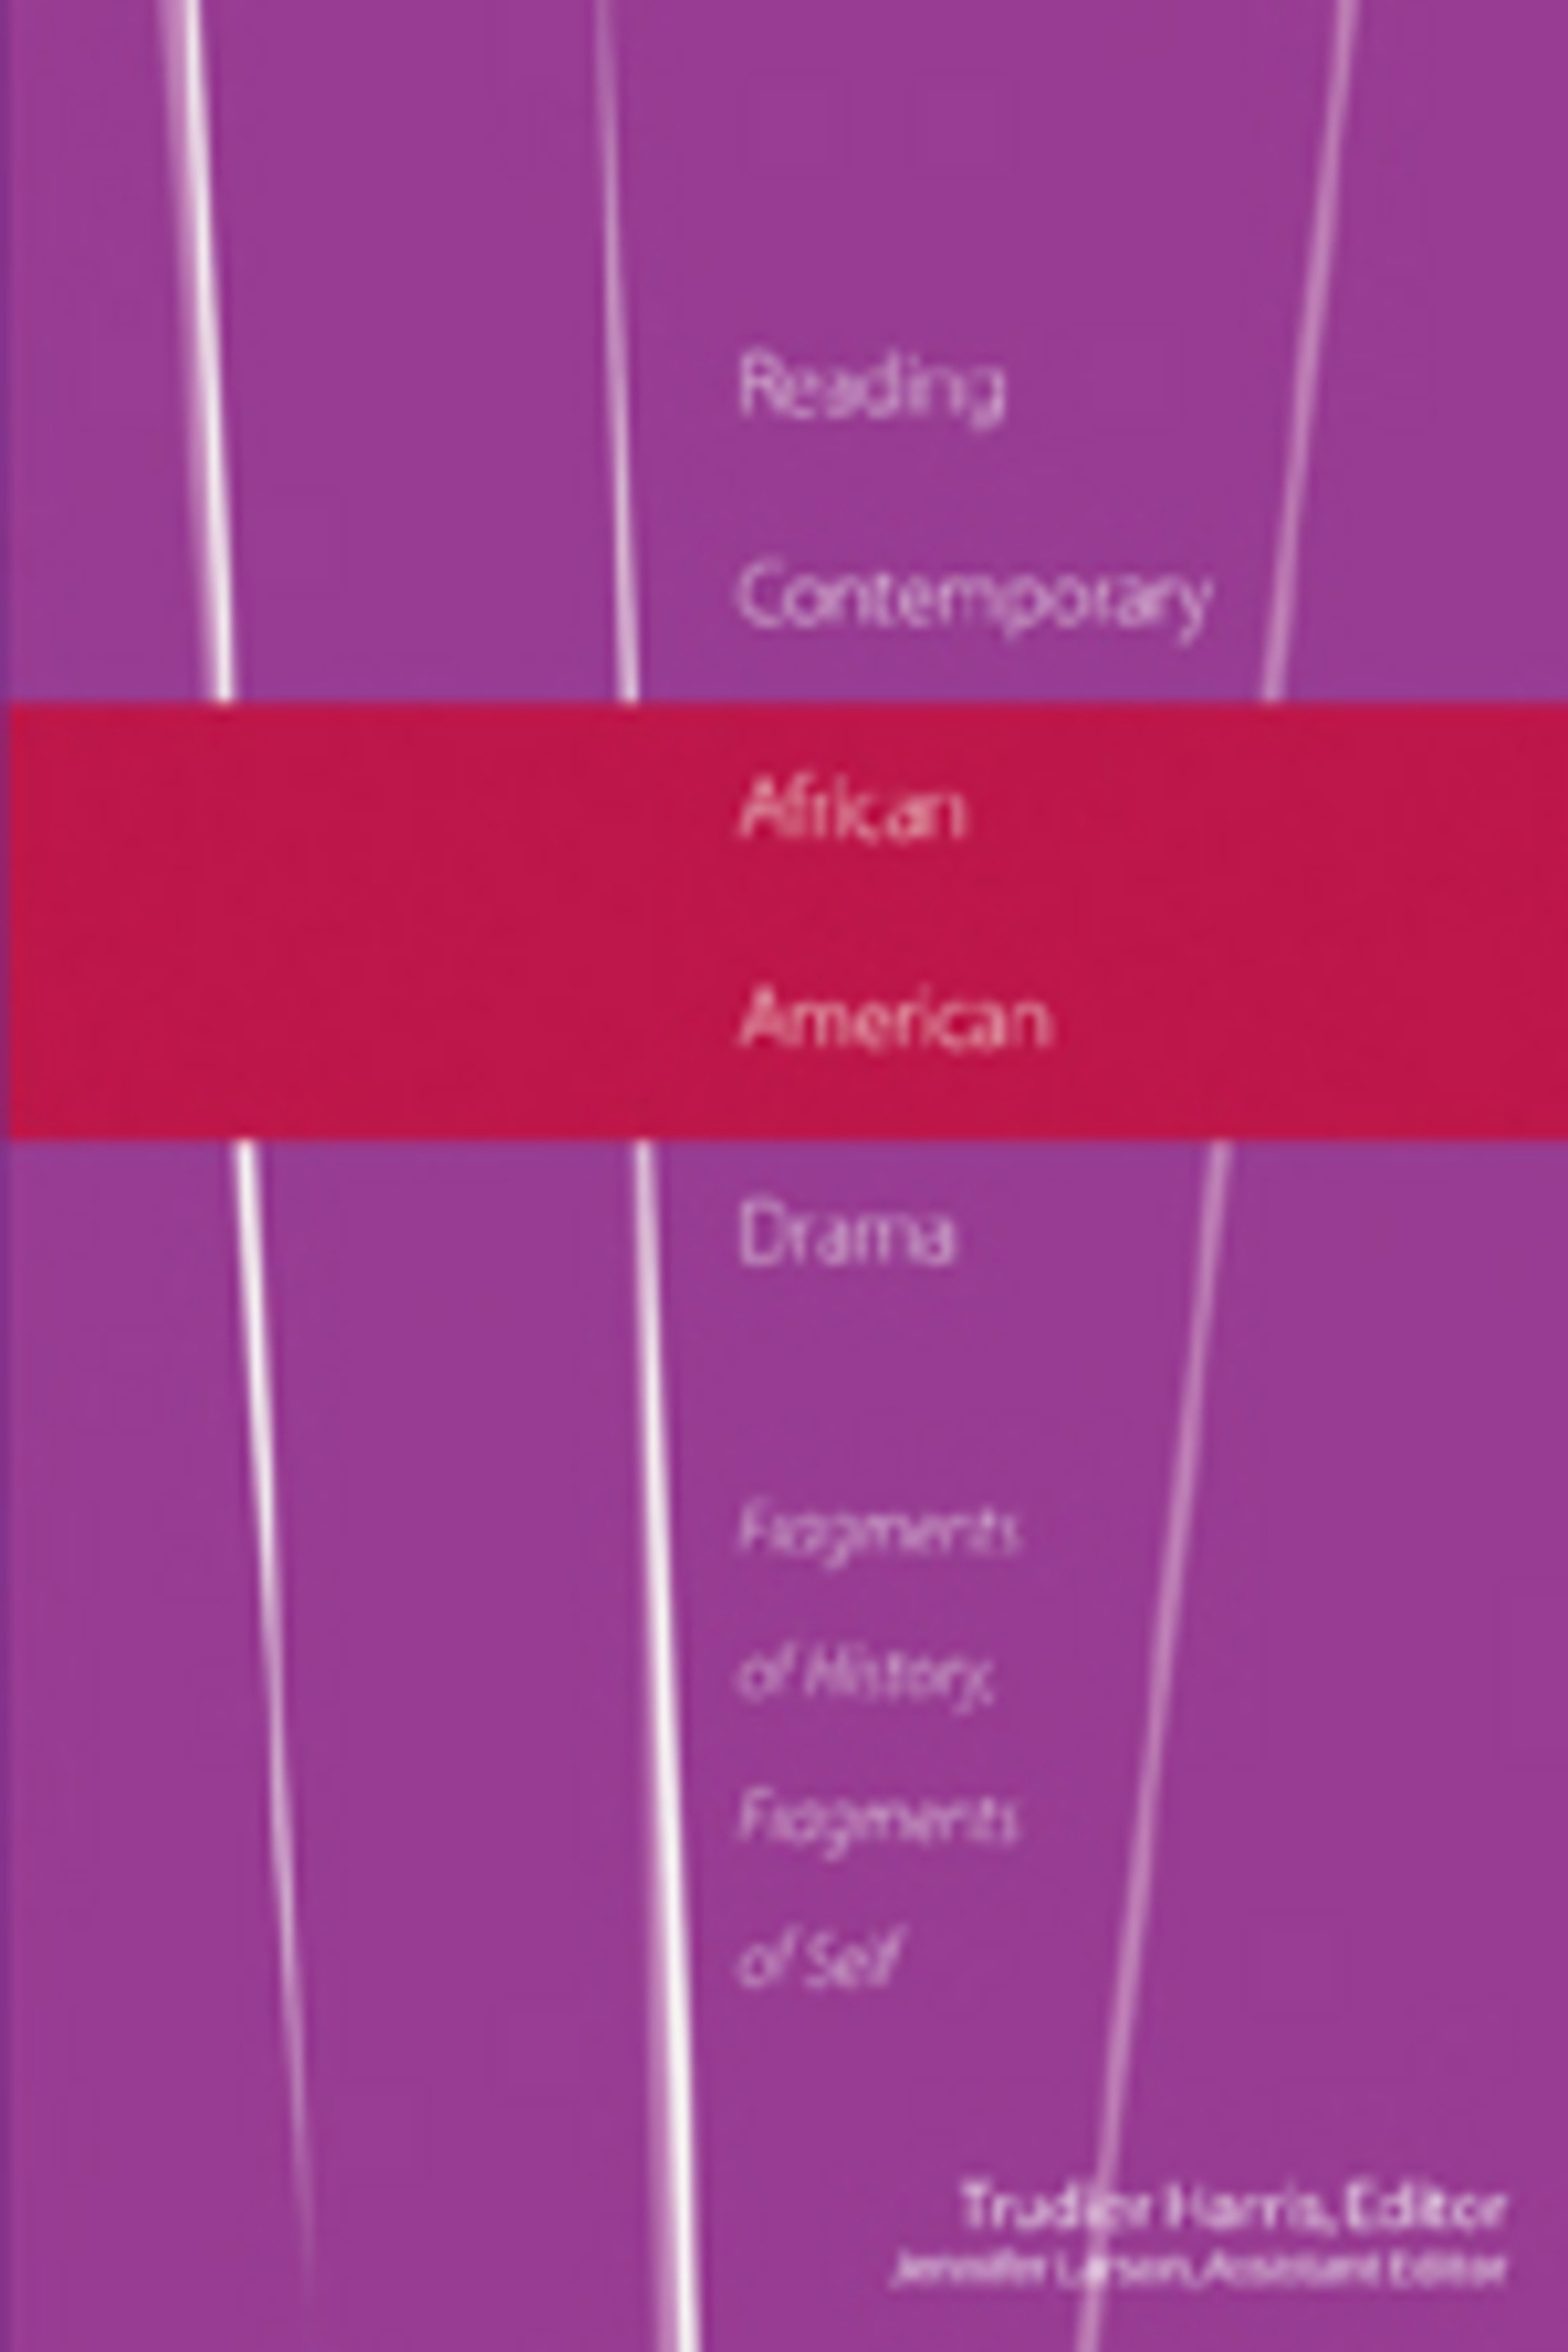 Title: Reading Contemporary African American Drama